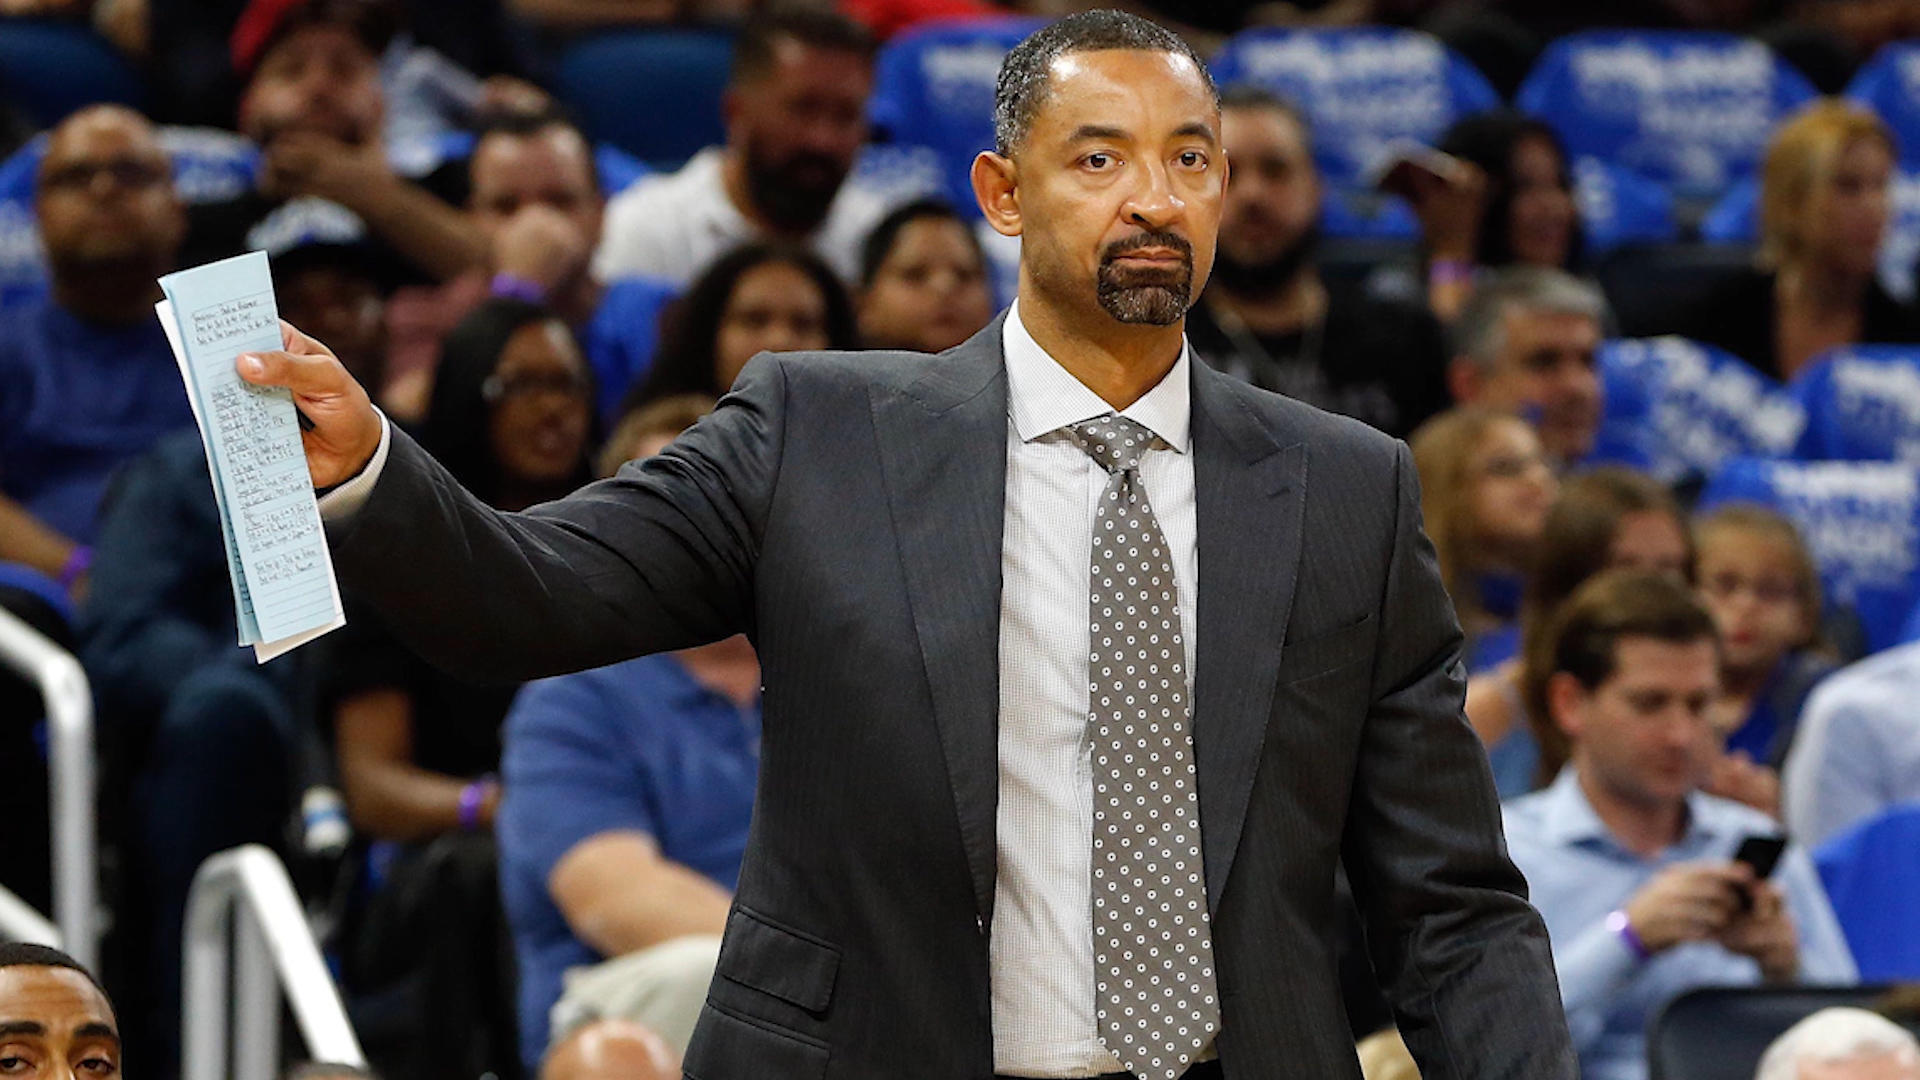 College Basketball Podcast: Did Michigan get it right by hiring Juwan Howard to coach the Wolverines?